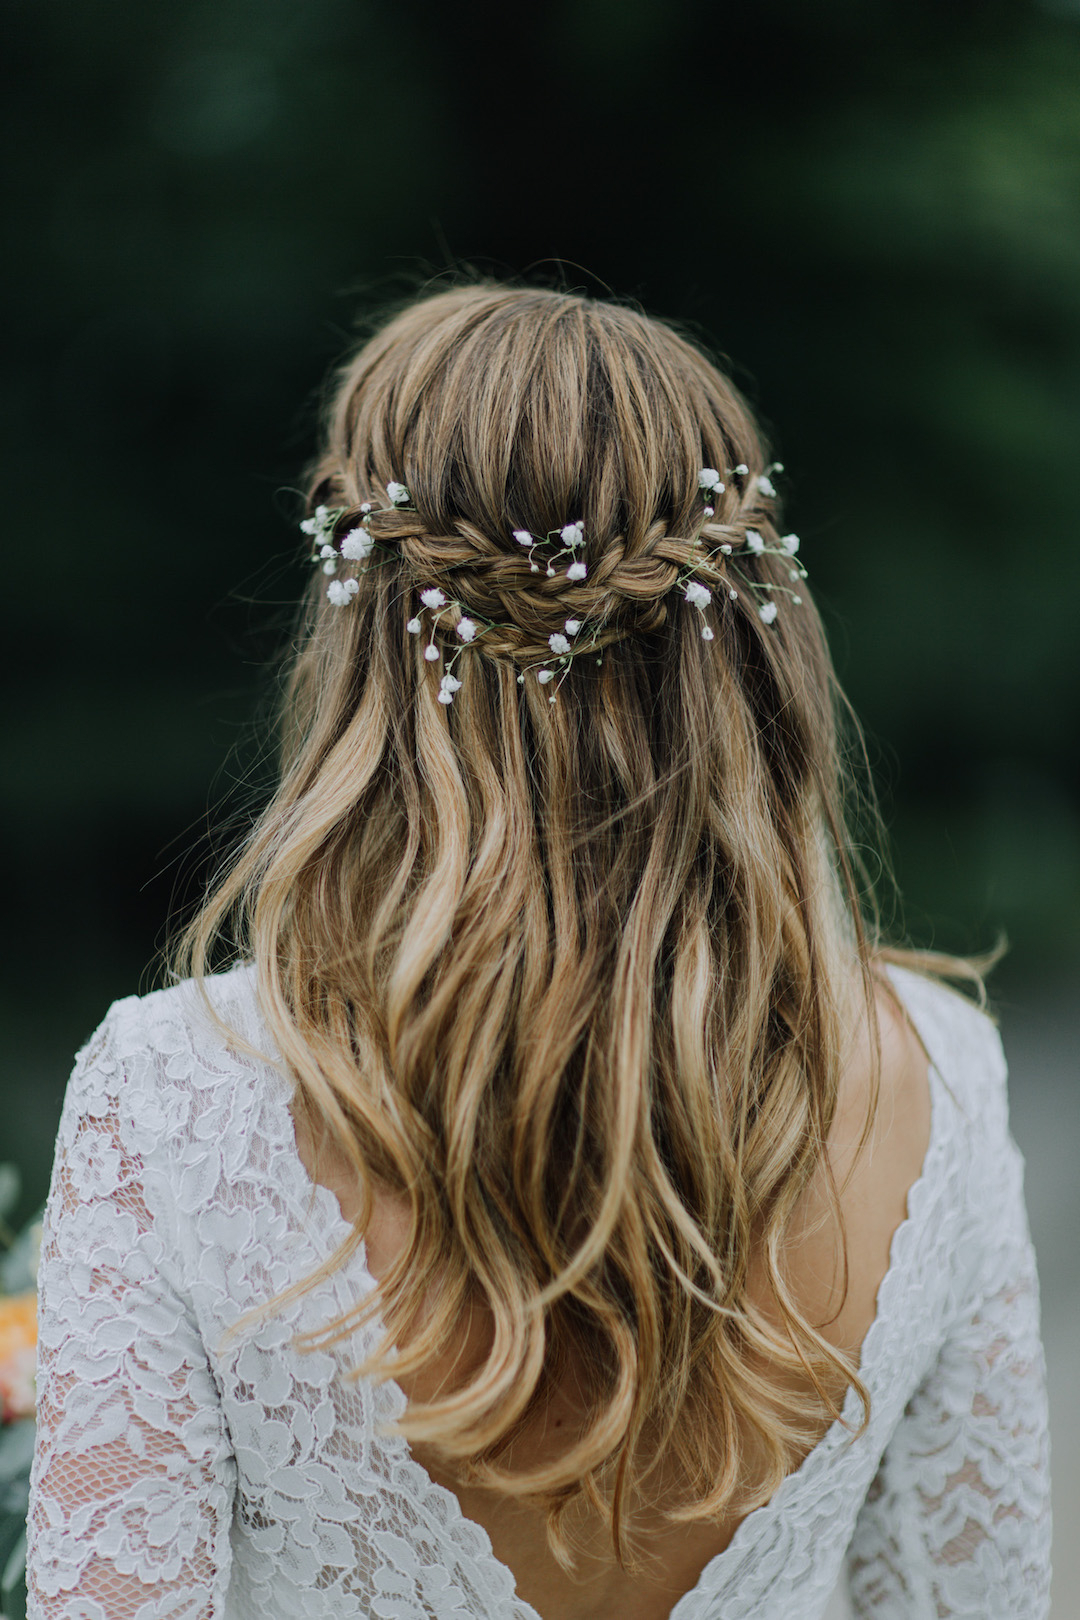 17 Gorgeous Half Up Half Down Wedding Hairstyles (View 17 of 20)